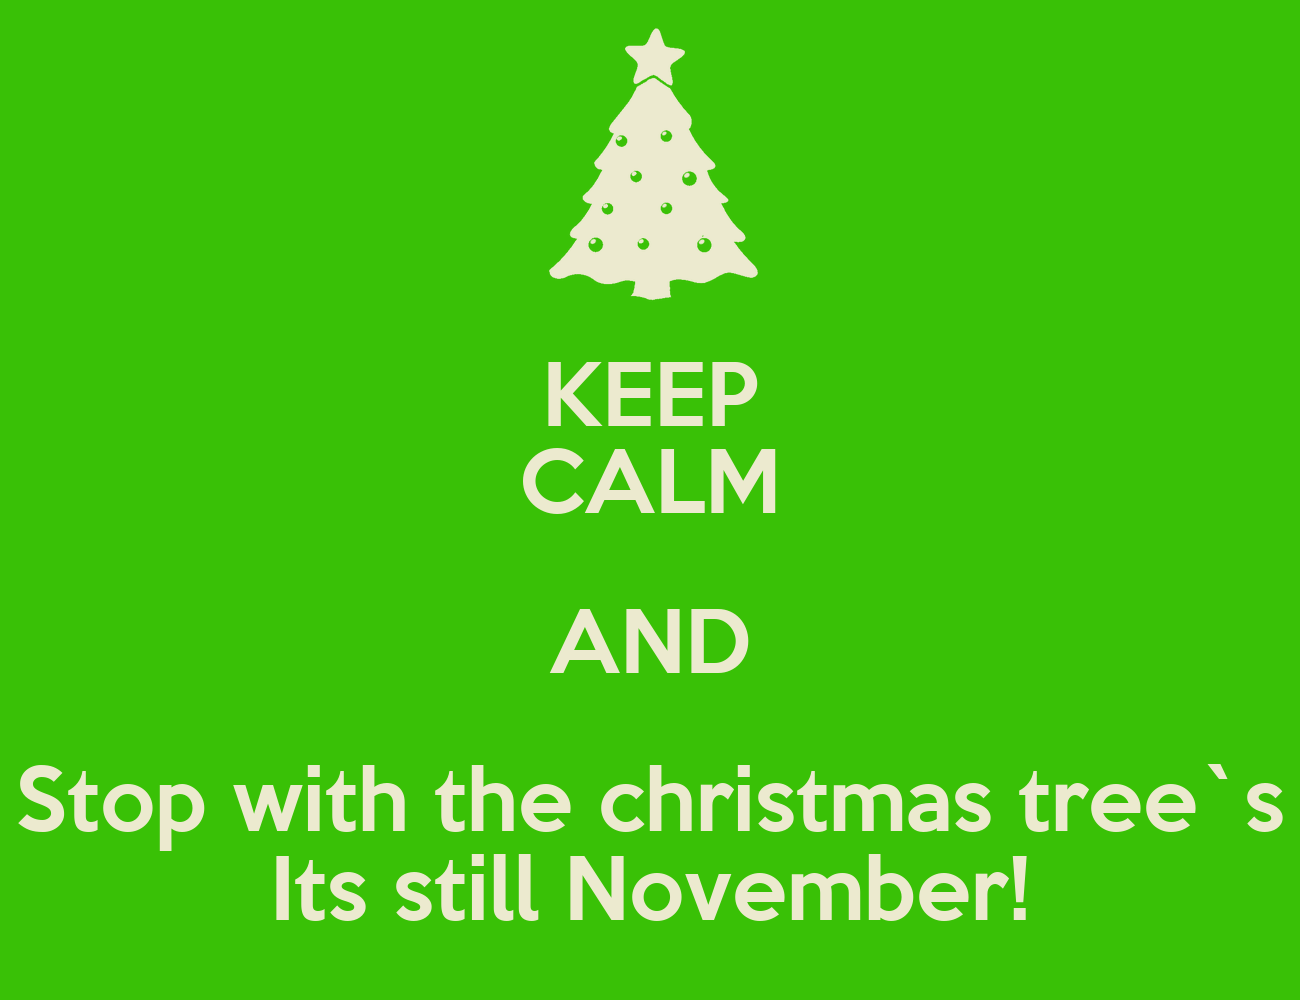 Keep Calm And Stop With The Christmas Tree S Its Still